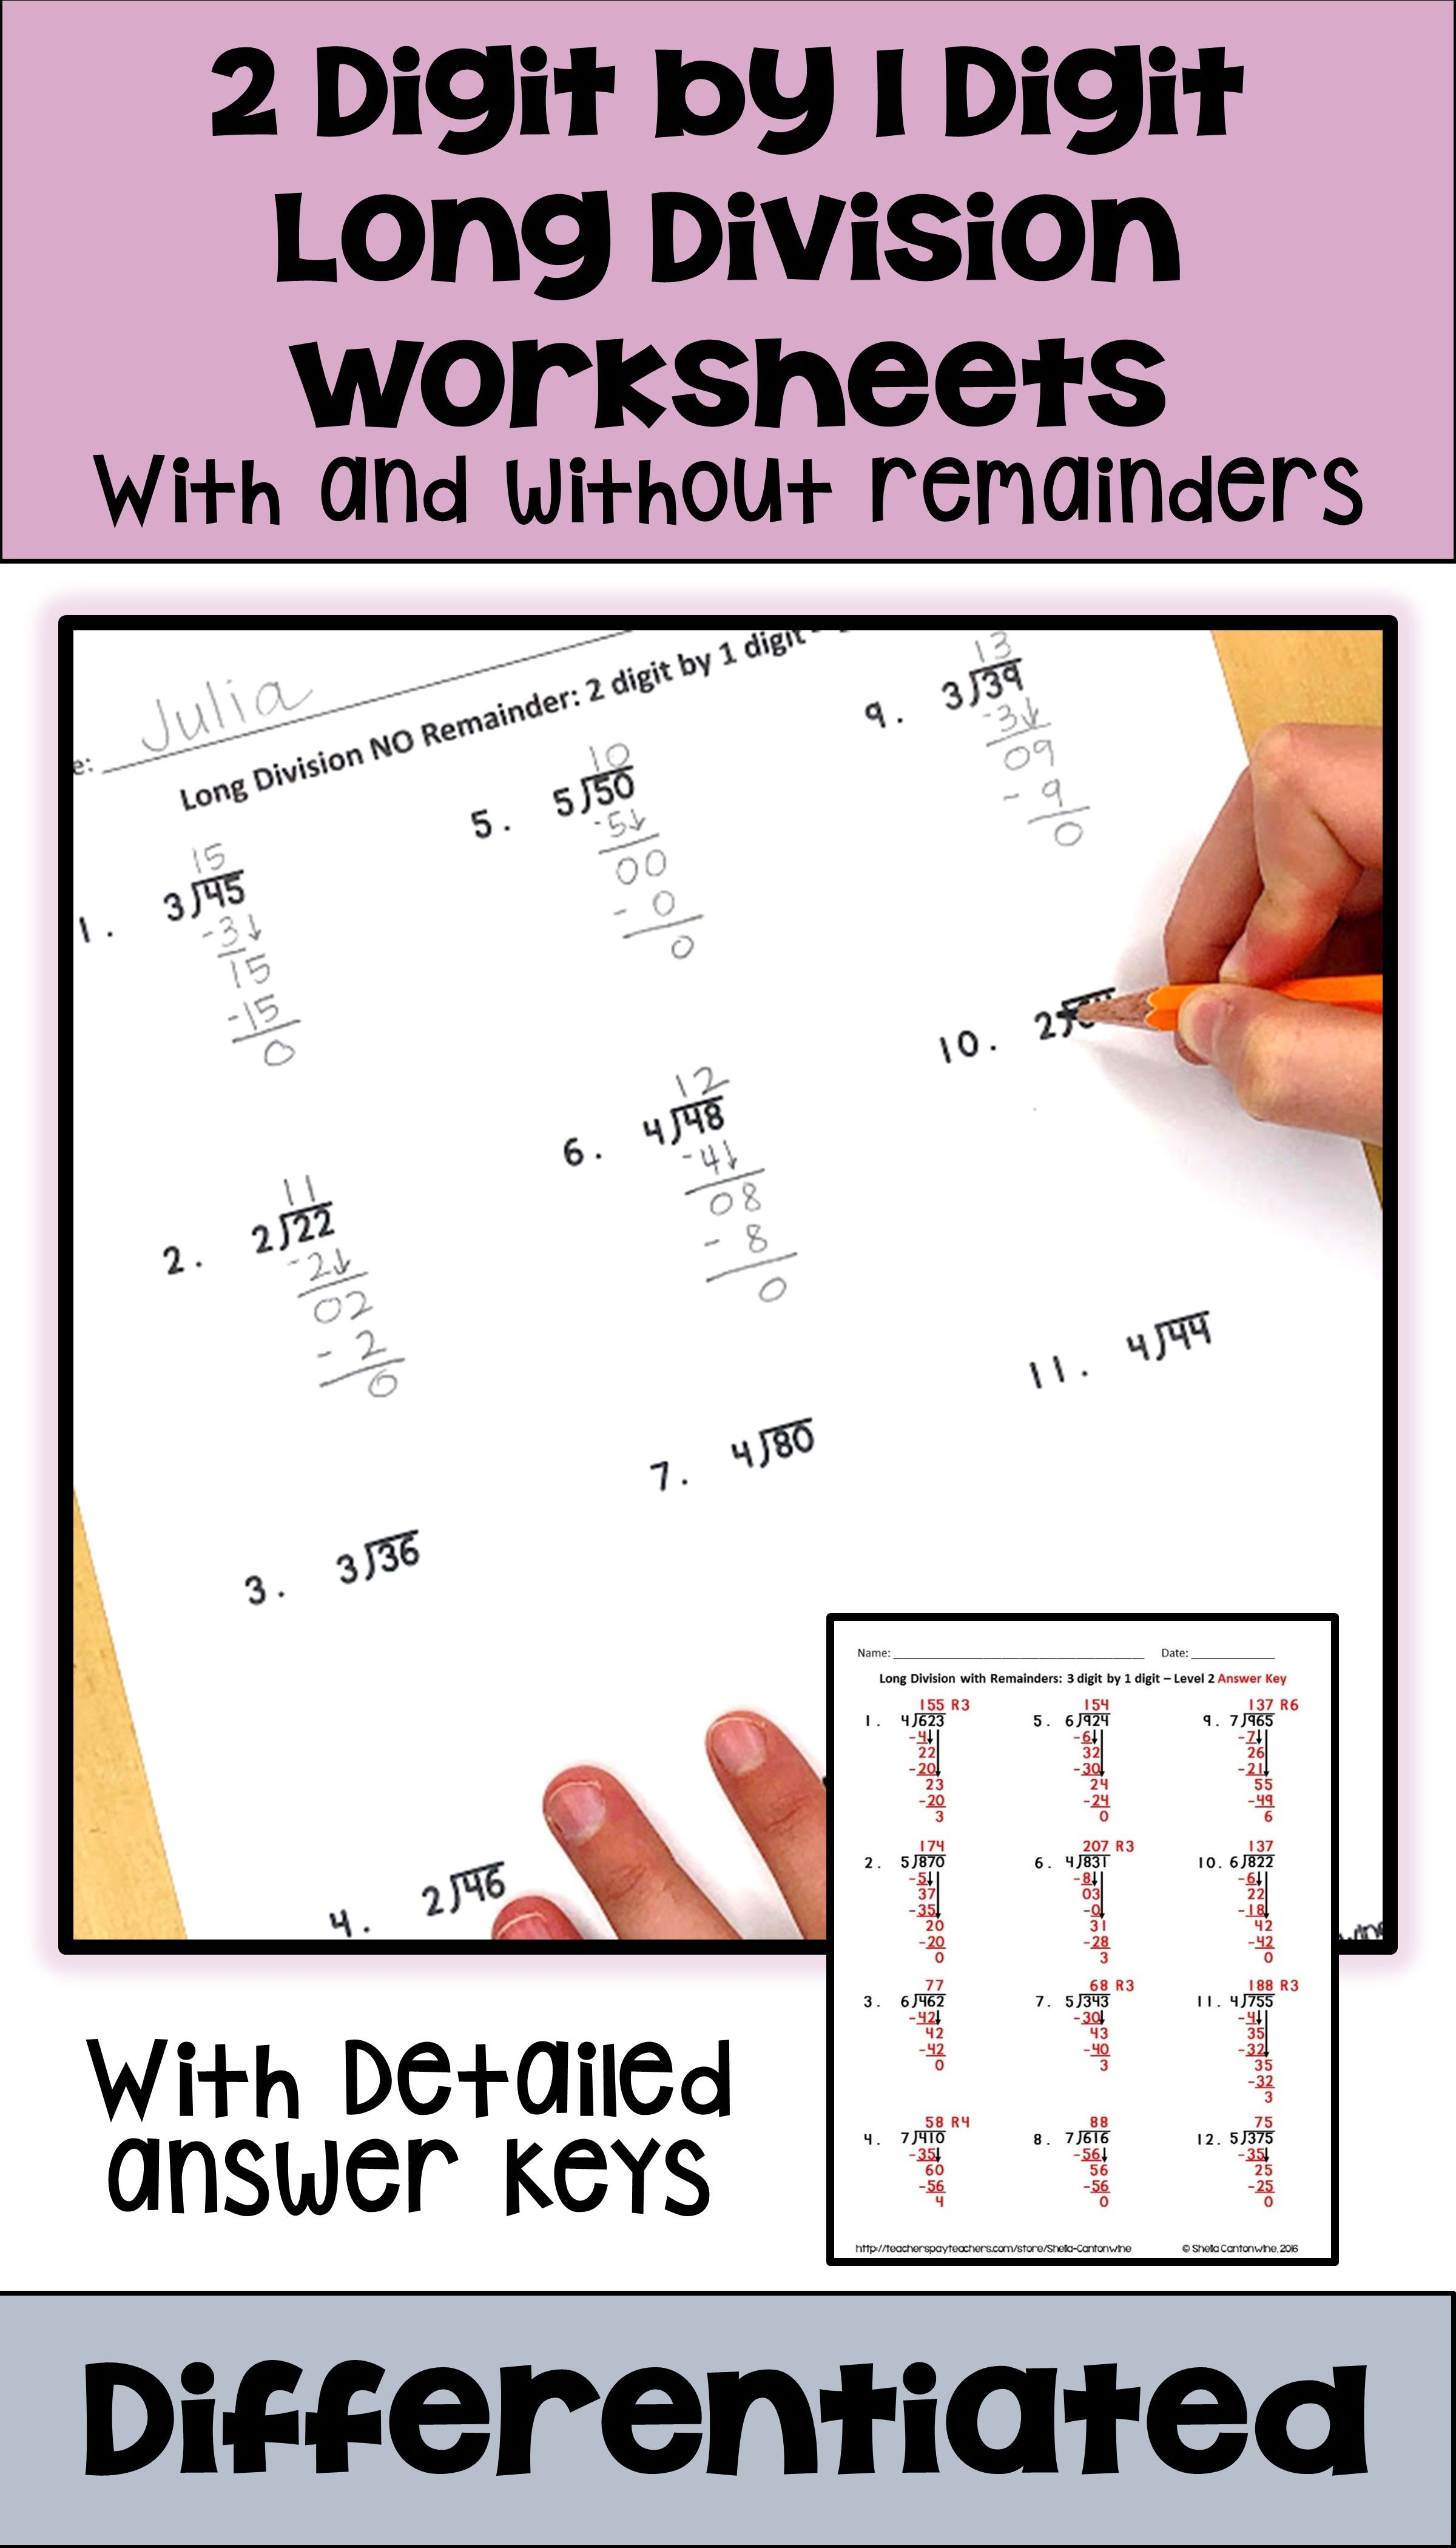 2 Digit By 1 Digit Long Division Worksheets